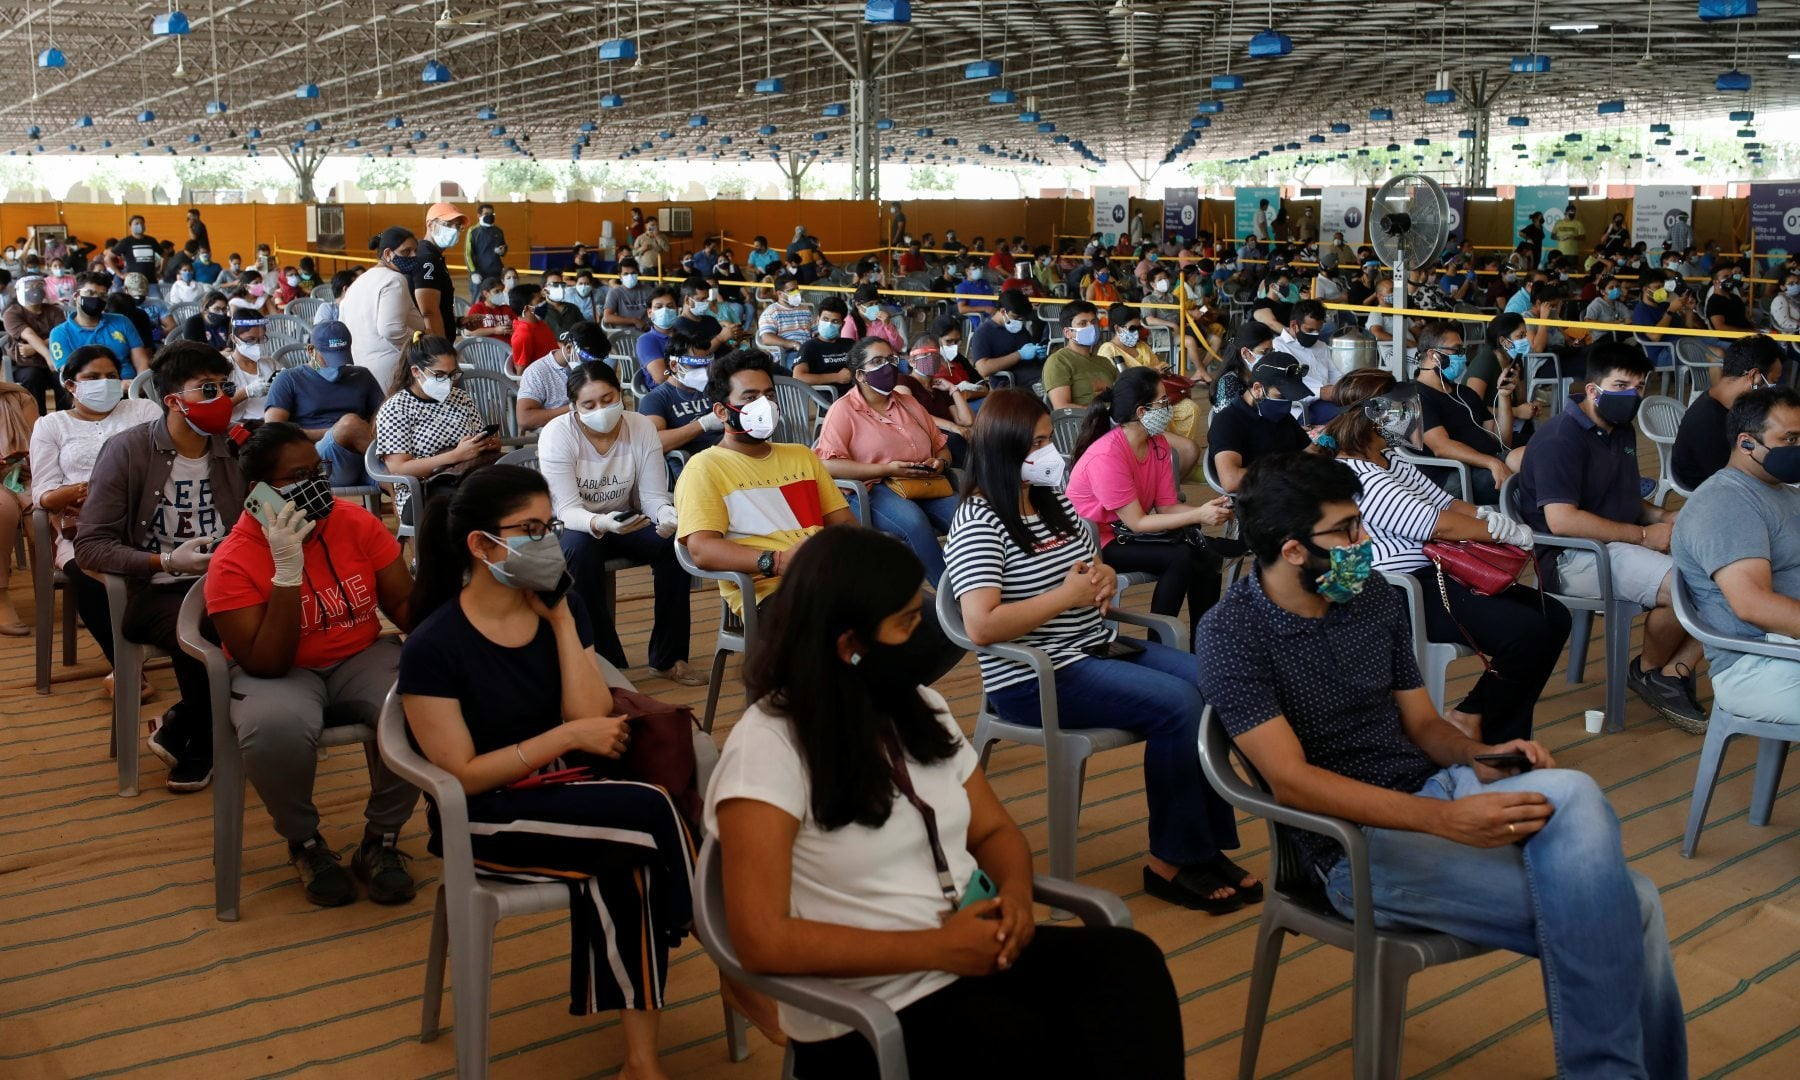 People wearing protective face masks wait to receive a dose of COVISHIELD, a coronavirus vaccine manufactured by Serum Institute of India, at a vaccination centre in New Delhi, India, May 4. — Reuters